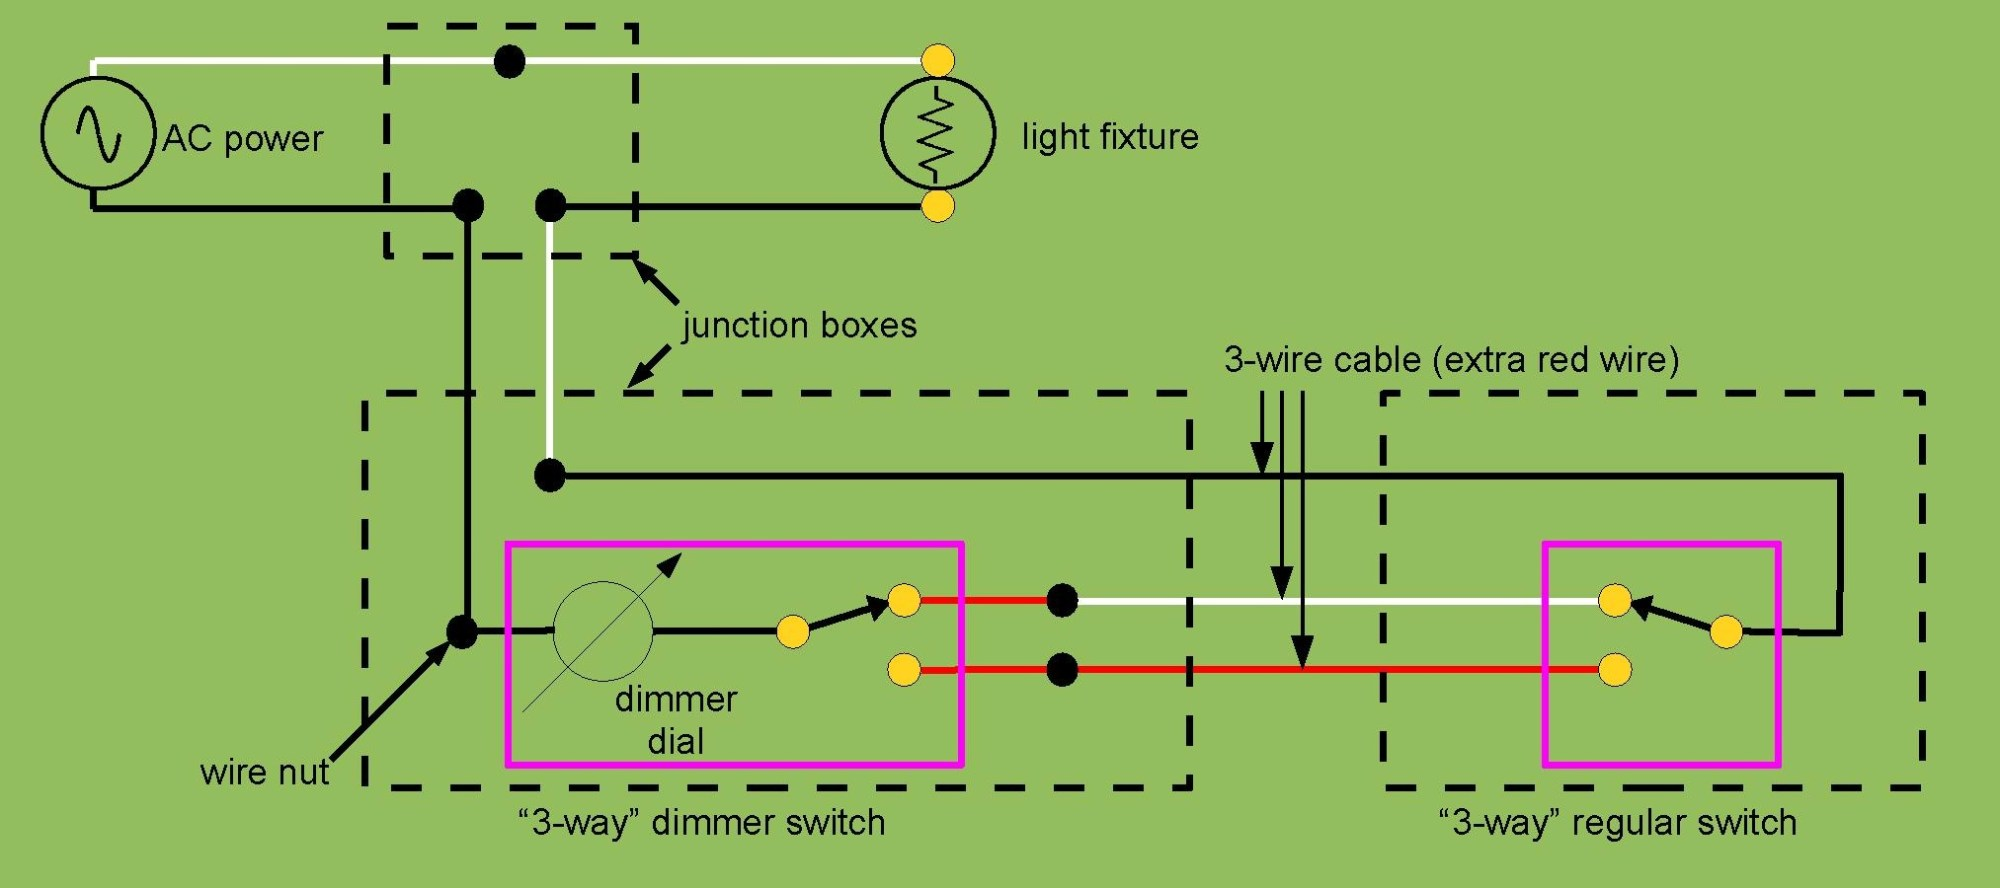 hight resolution of file 3 way dimmer switch wiring pdf